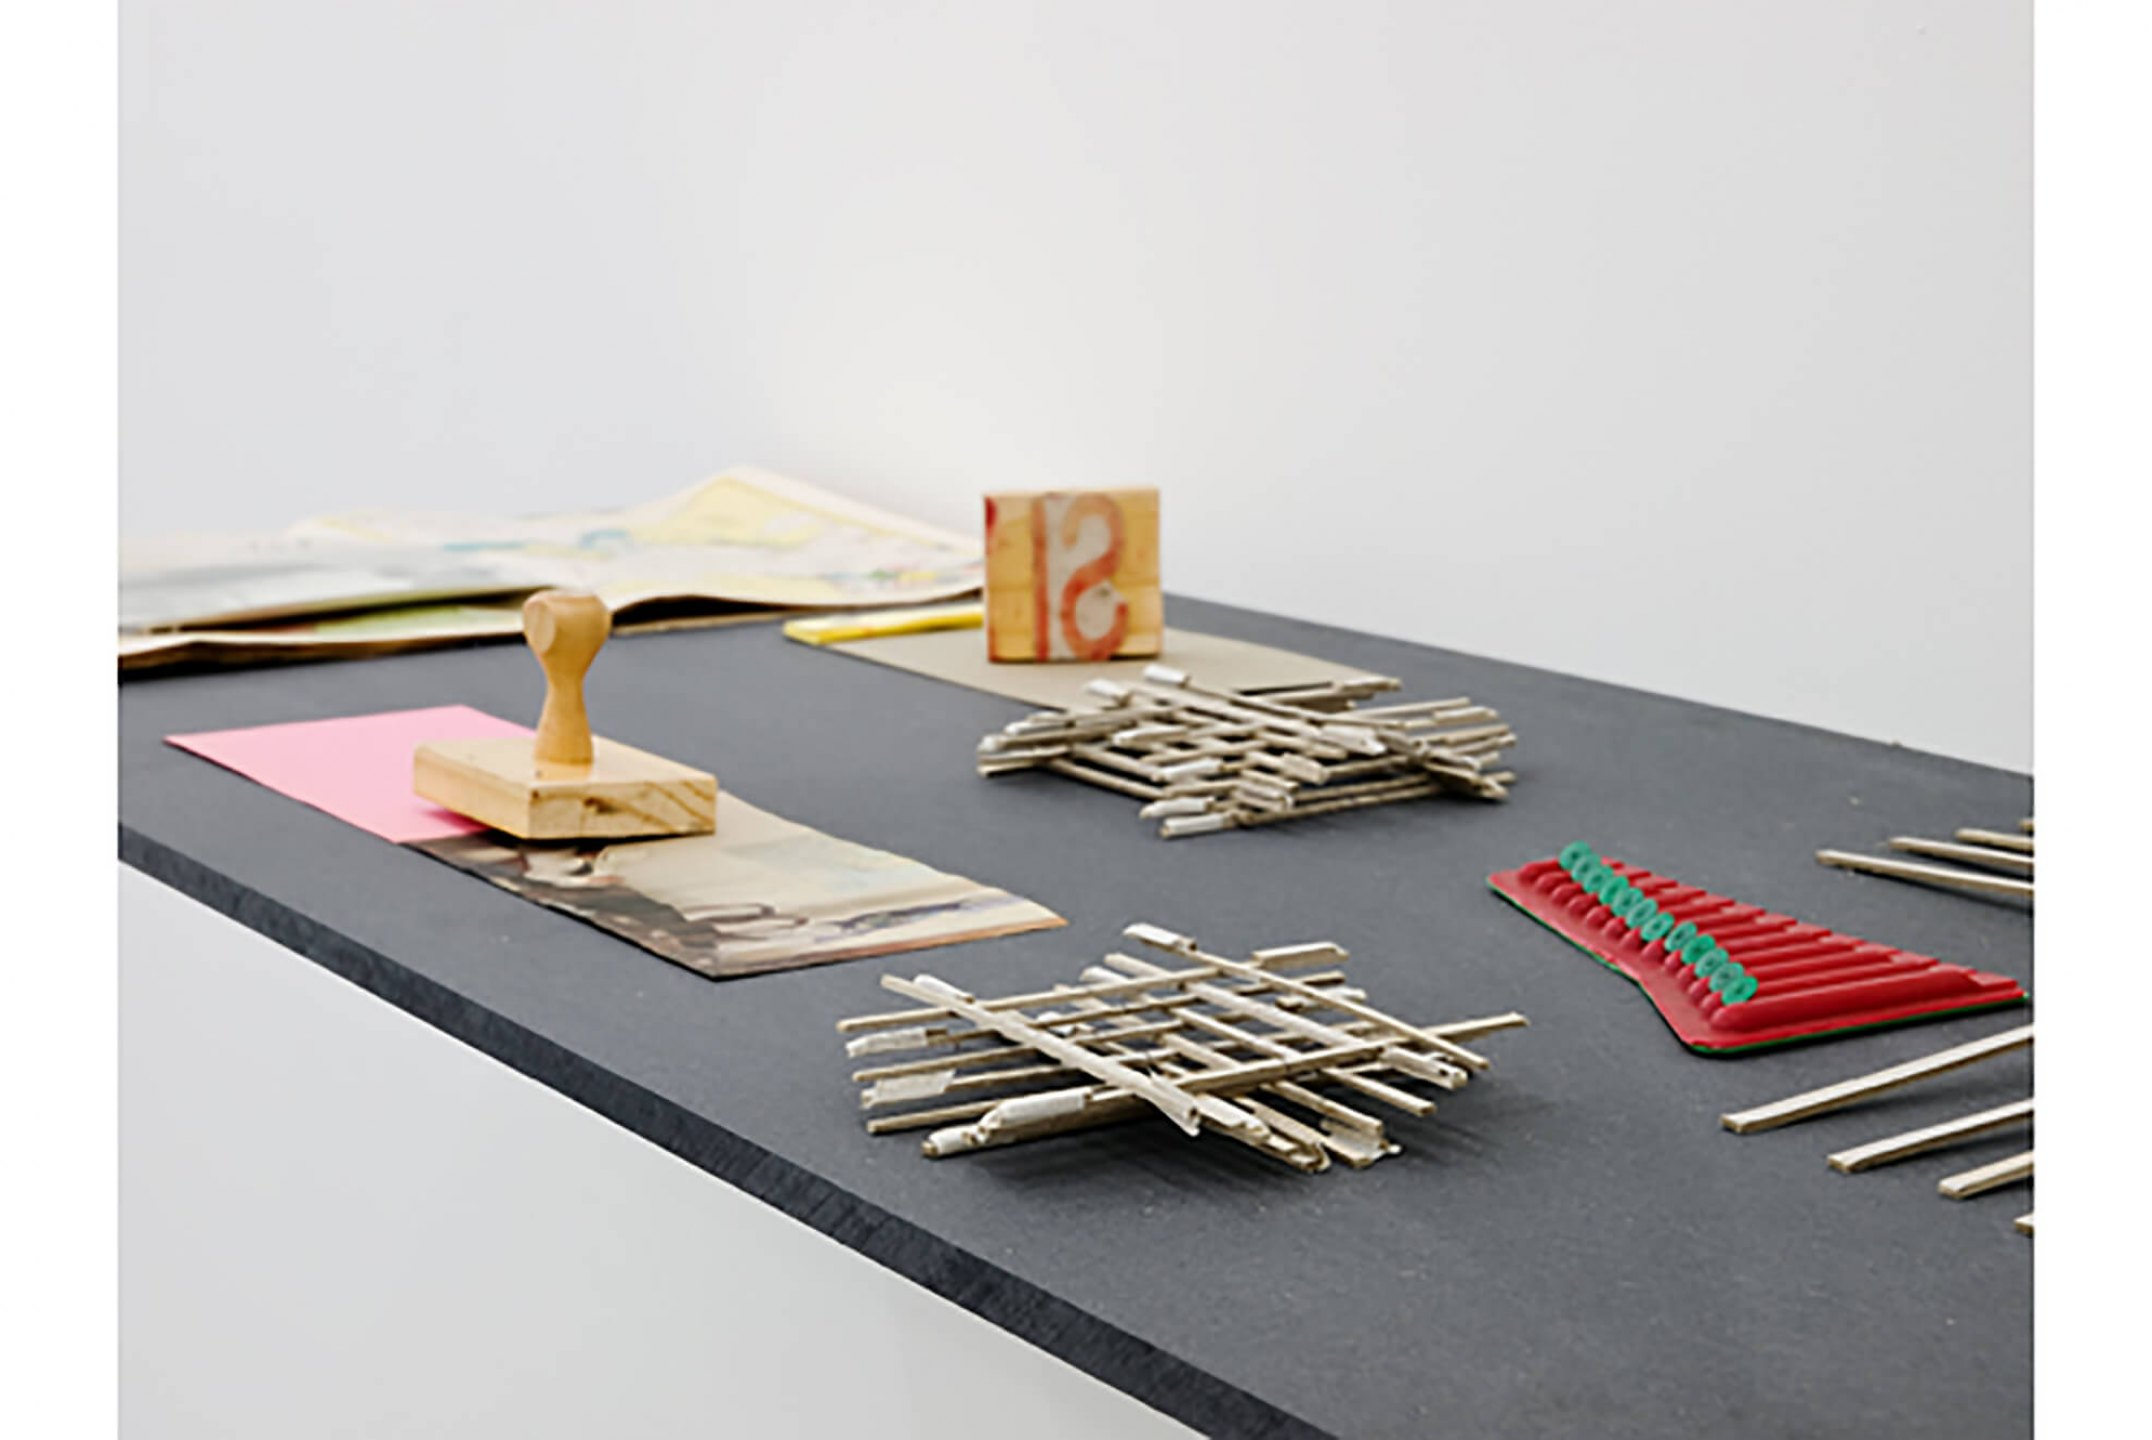 Runo Lagomarsino,<em>Las Casas is Not a Home</em>, 2008/2010,Installation withobjects, sculpture, video, drawings prints and shelves, variable dimensions - Mendes Wood DM